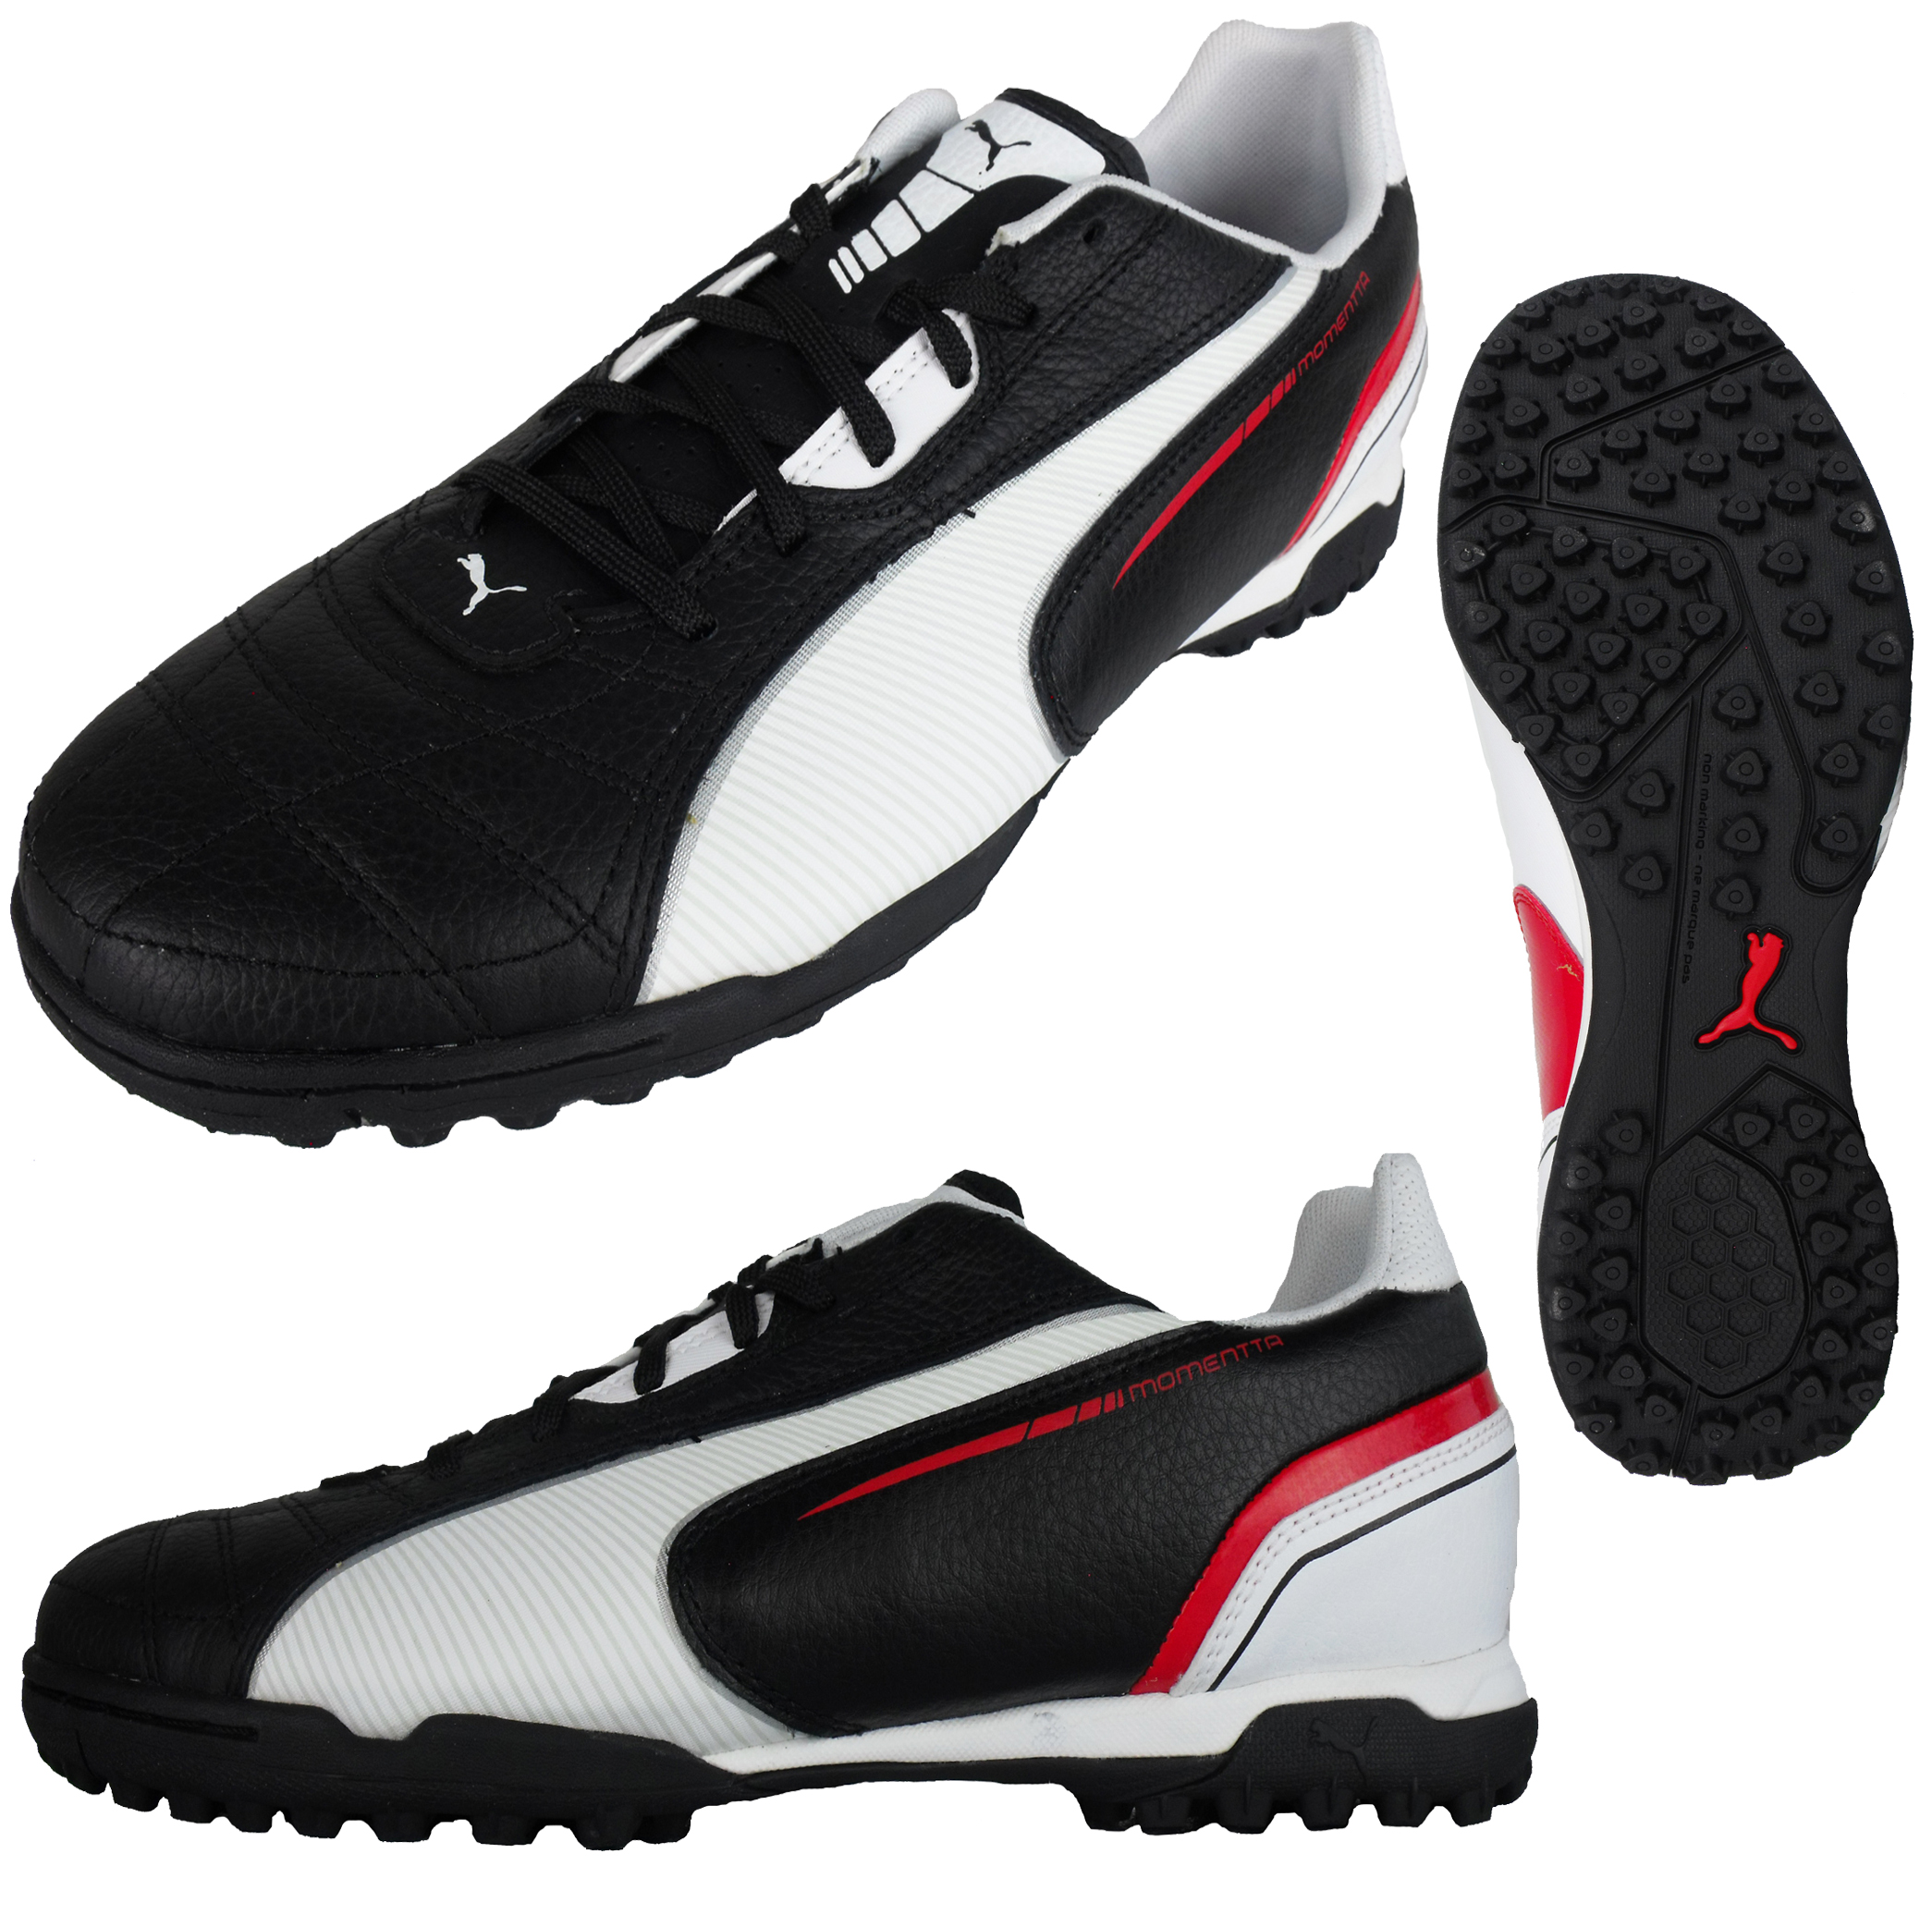 check out 9b7f2 862df ... Mens Puma Momentta TT Football Astro Turf Trainer Soccer Trainers  Astros Leather ...